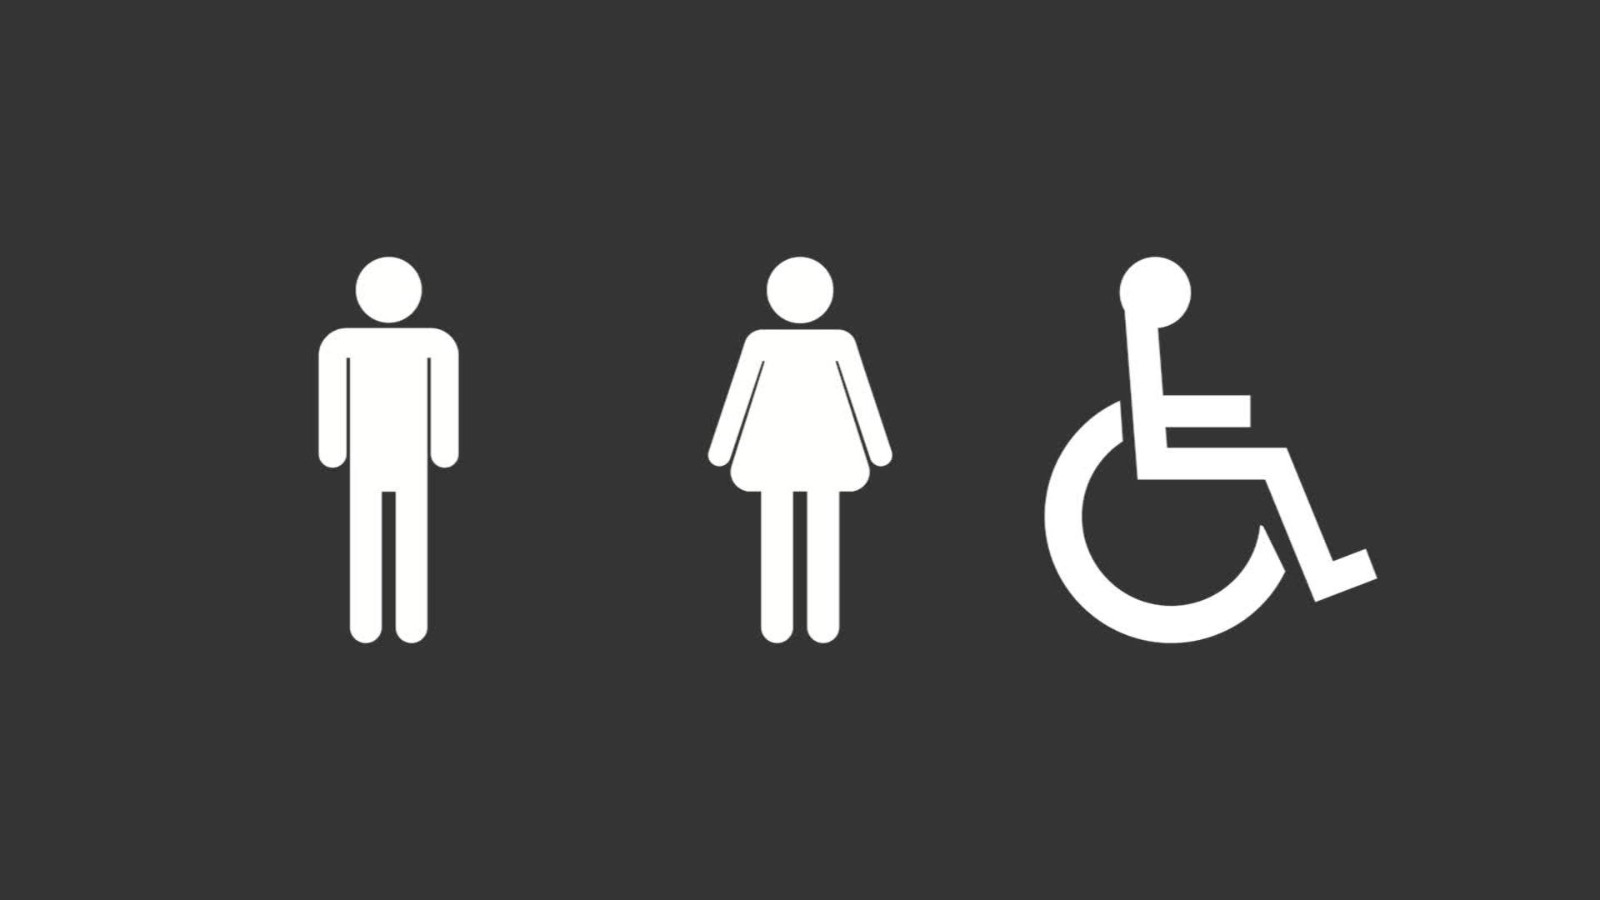 North Carolina  U S  square off over transgender rights   CNNPolitics. Things You Need For Your First Bathroom. Home Design Ideas